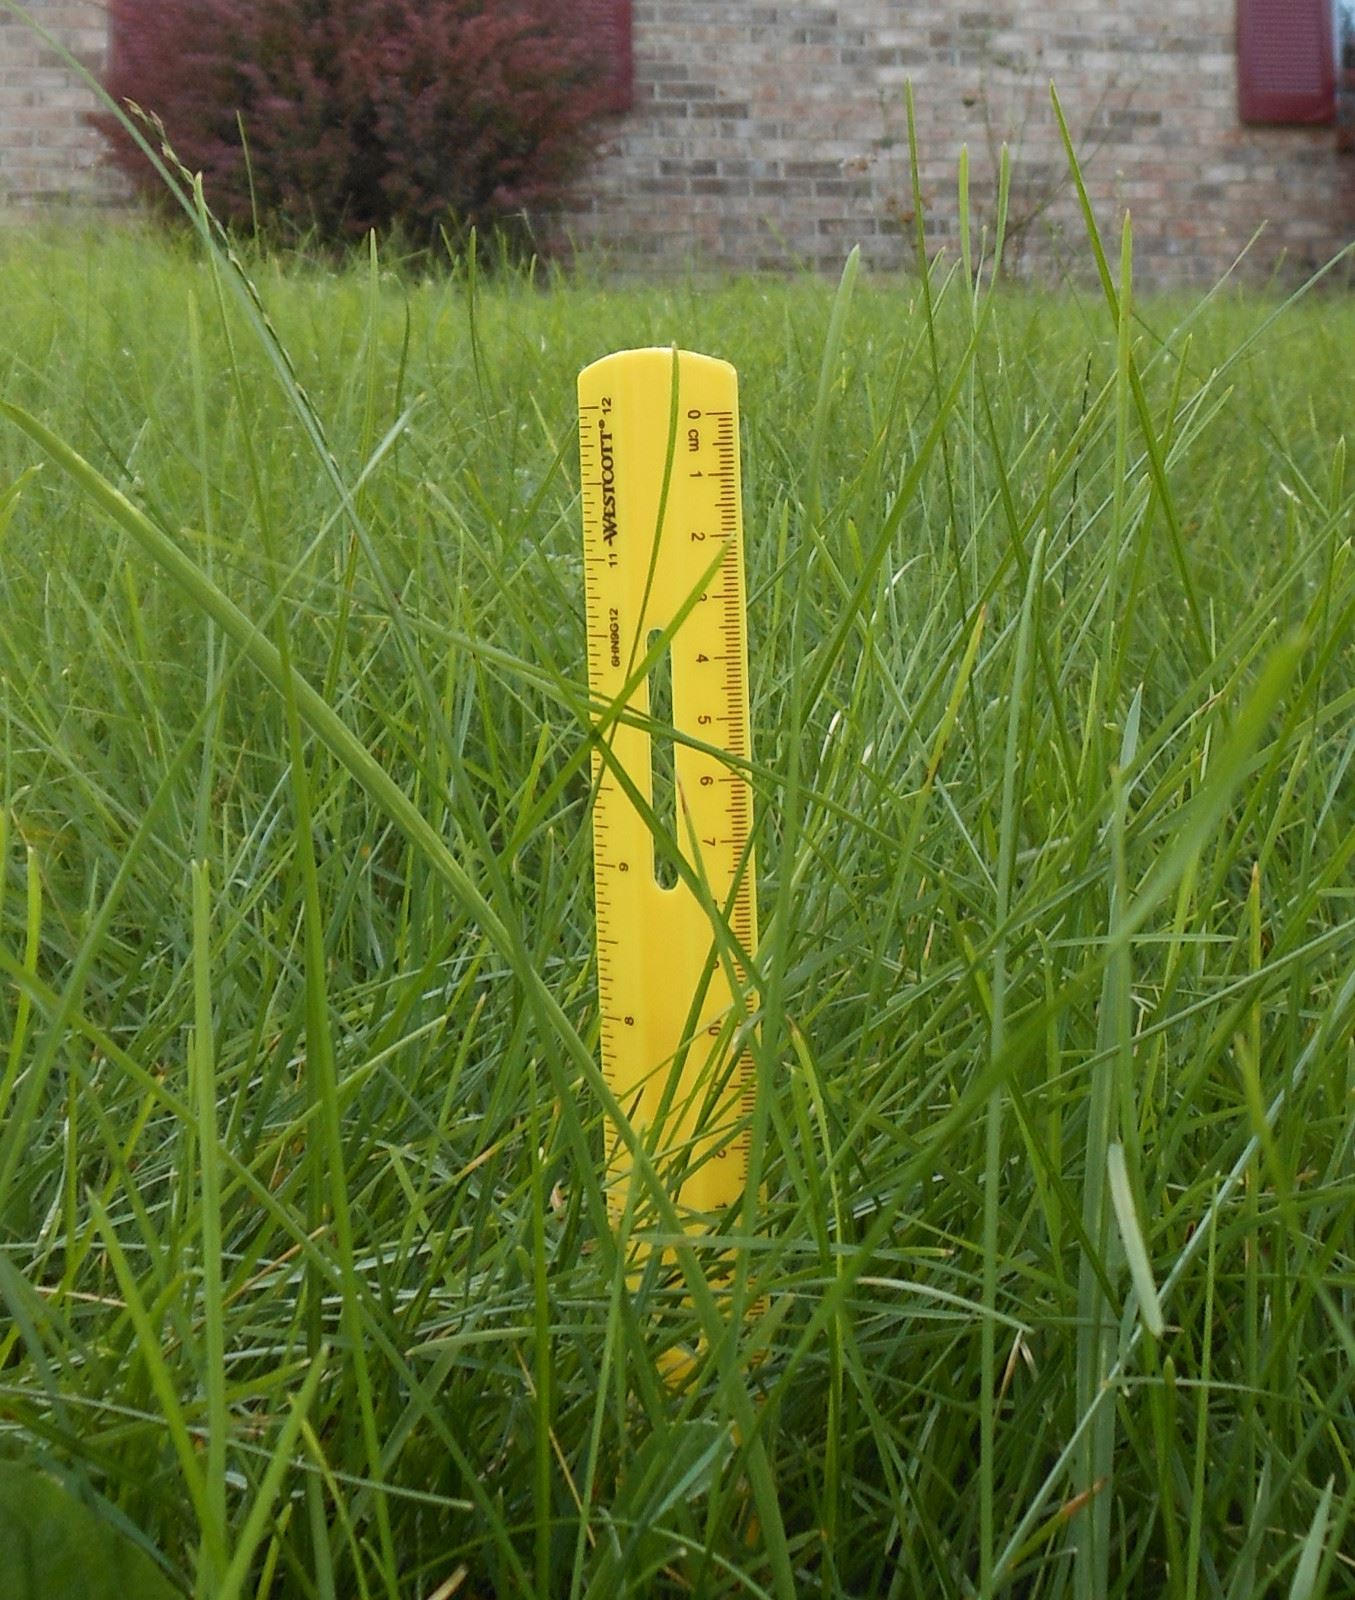 Ruler in the grass